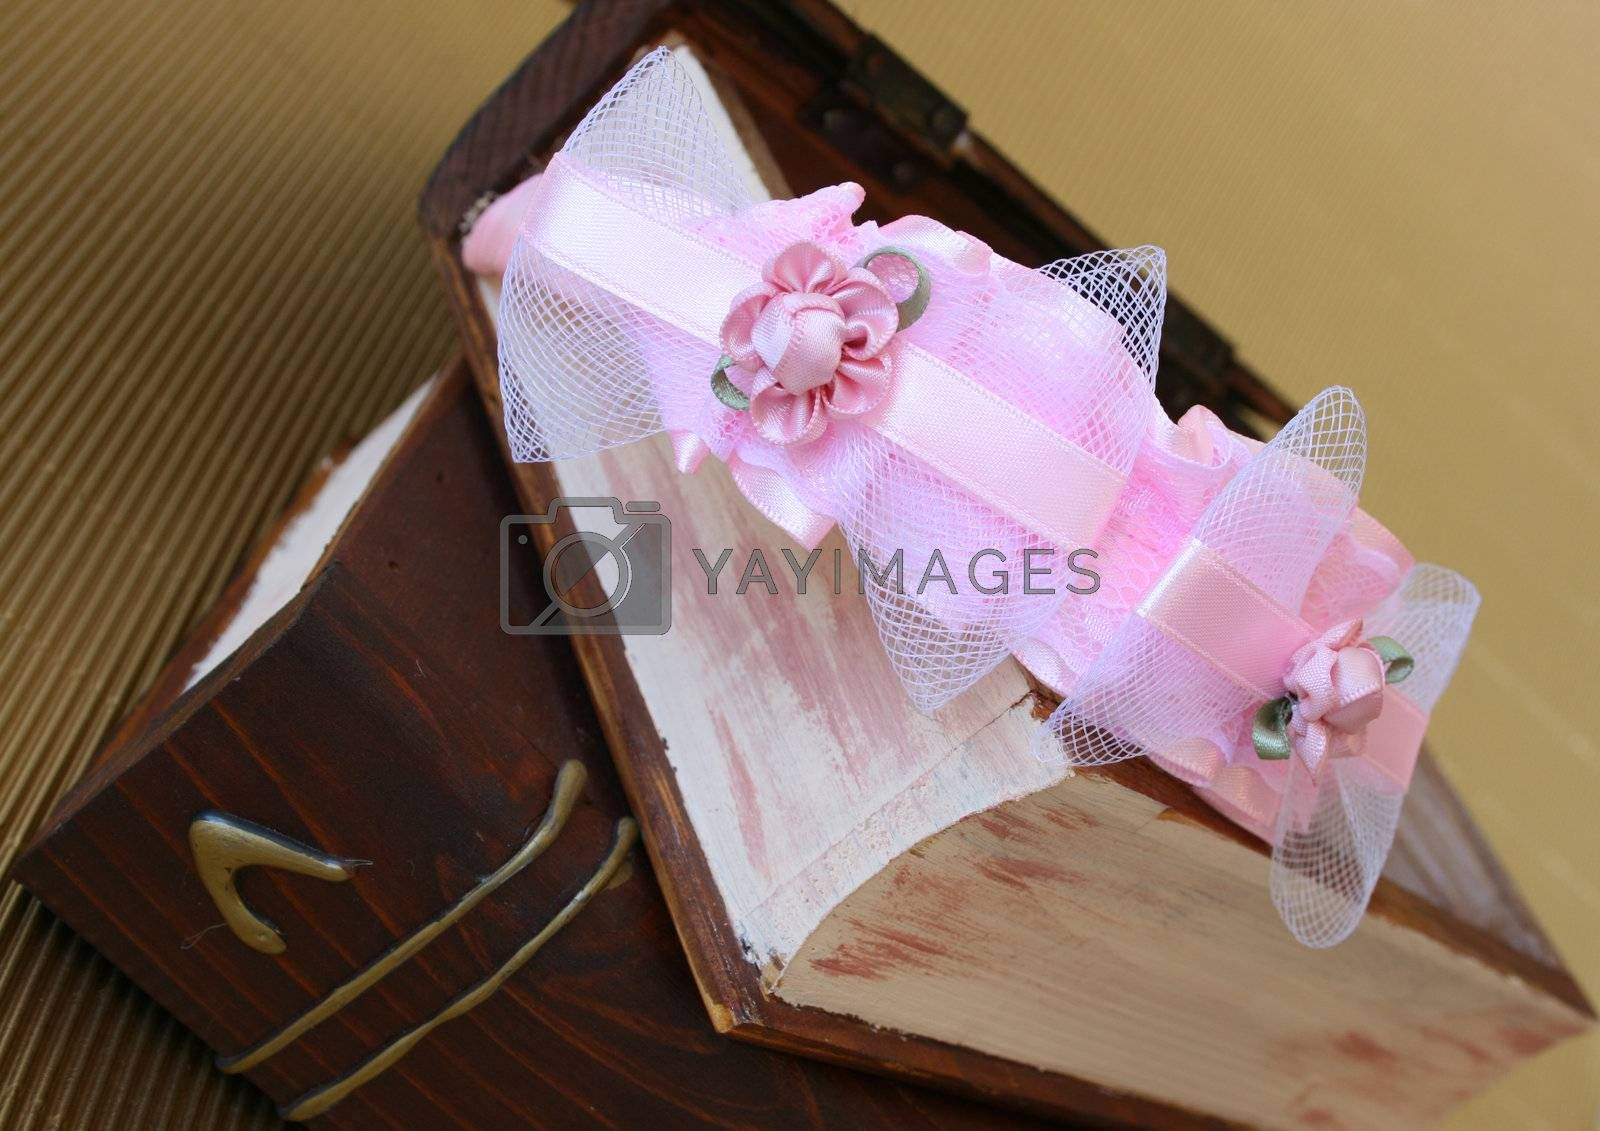 Pink Hair Accessories on a woonden jewellery box, on a golden background